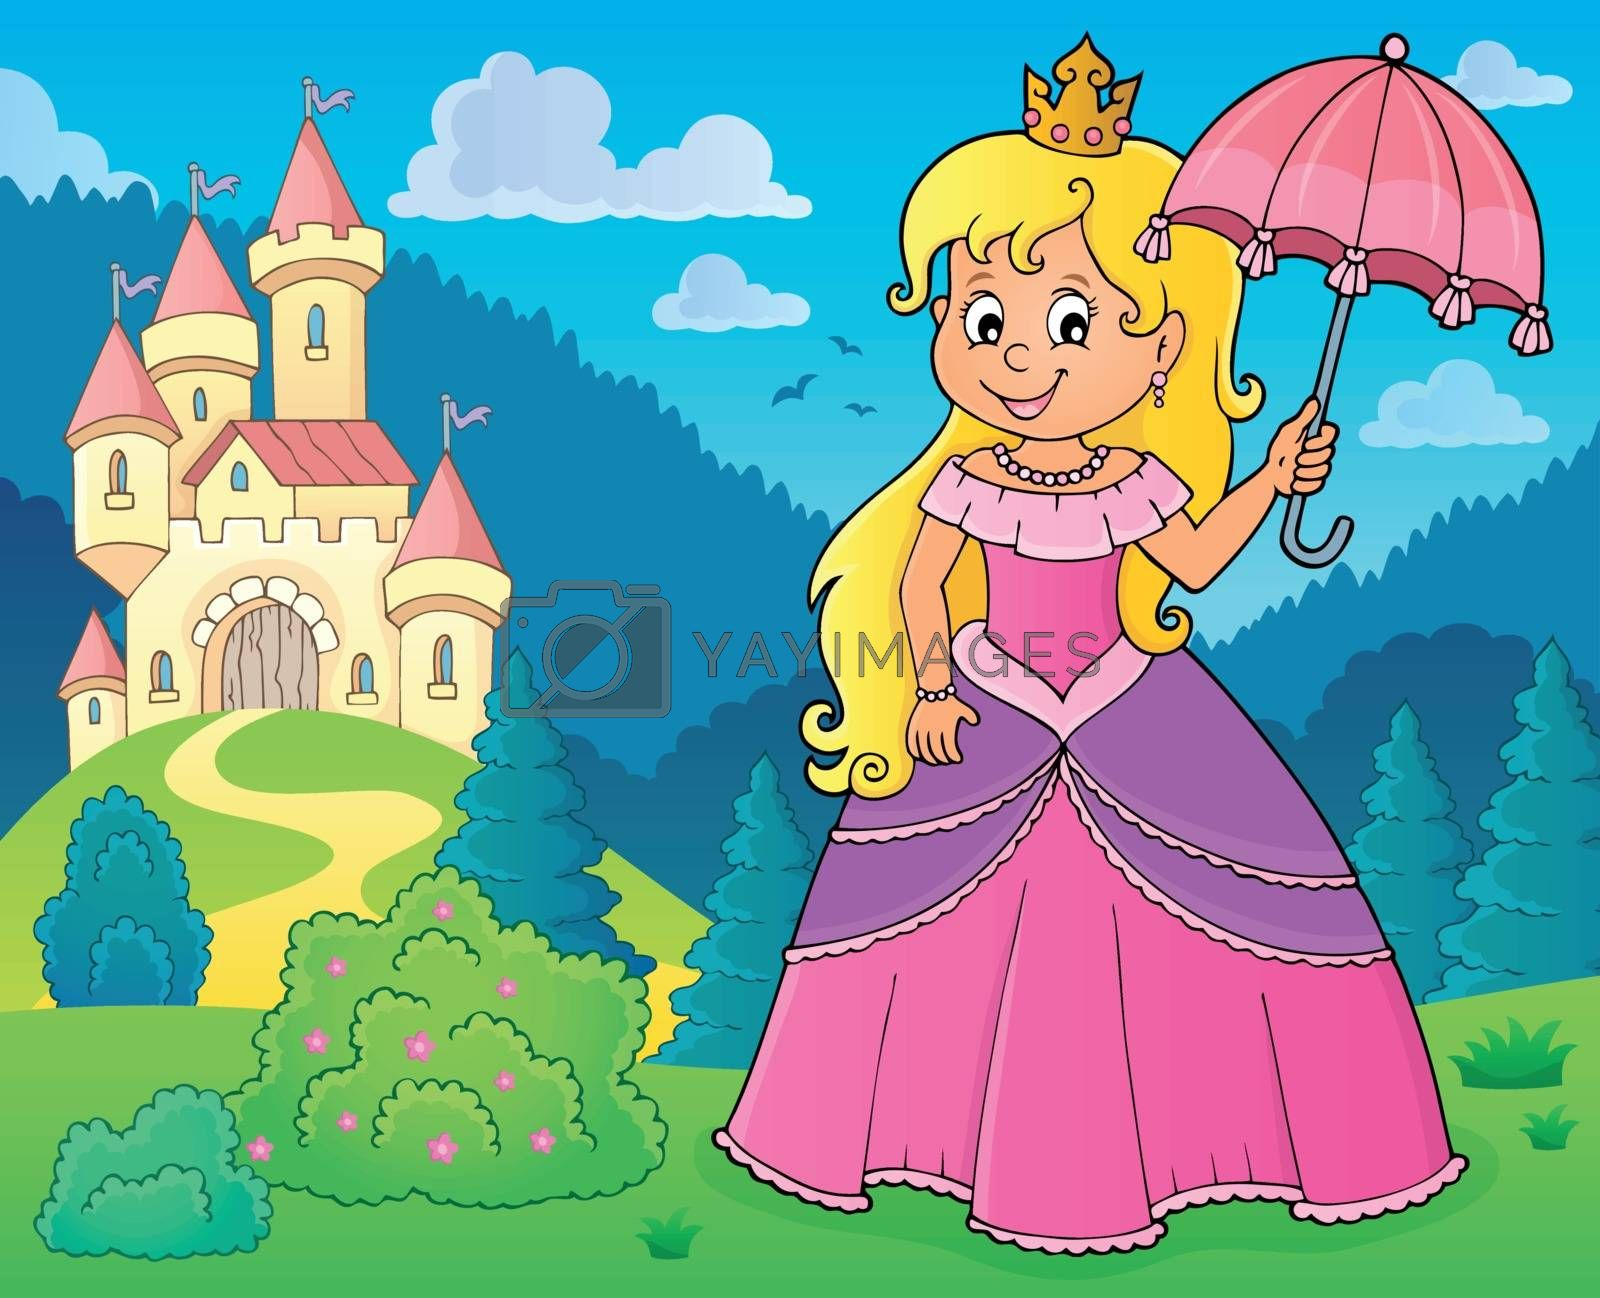 Princess with umbrella theme image 2 - eps10 vector illustration.